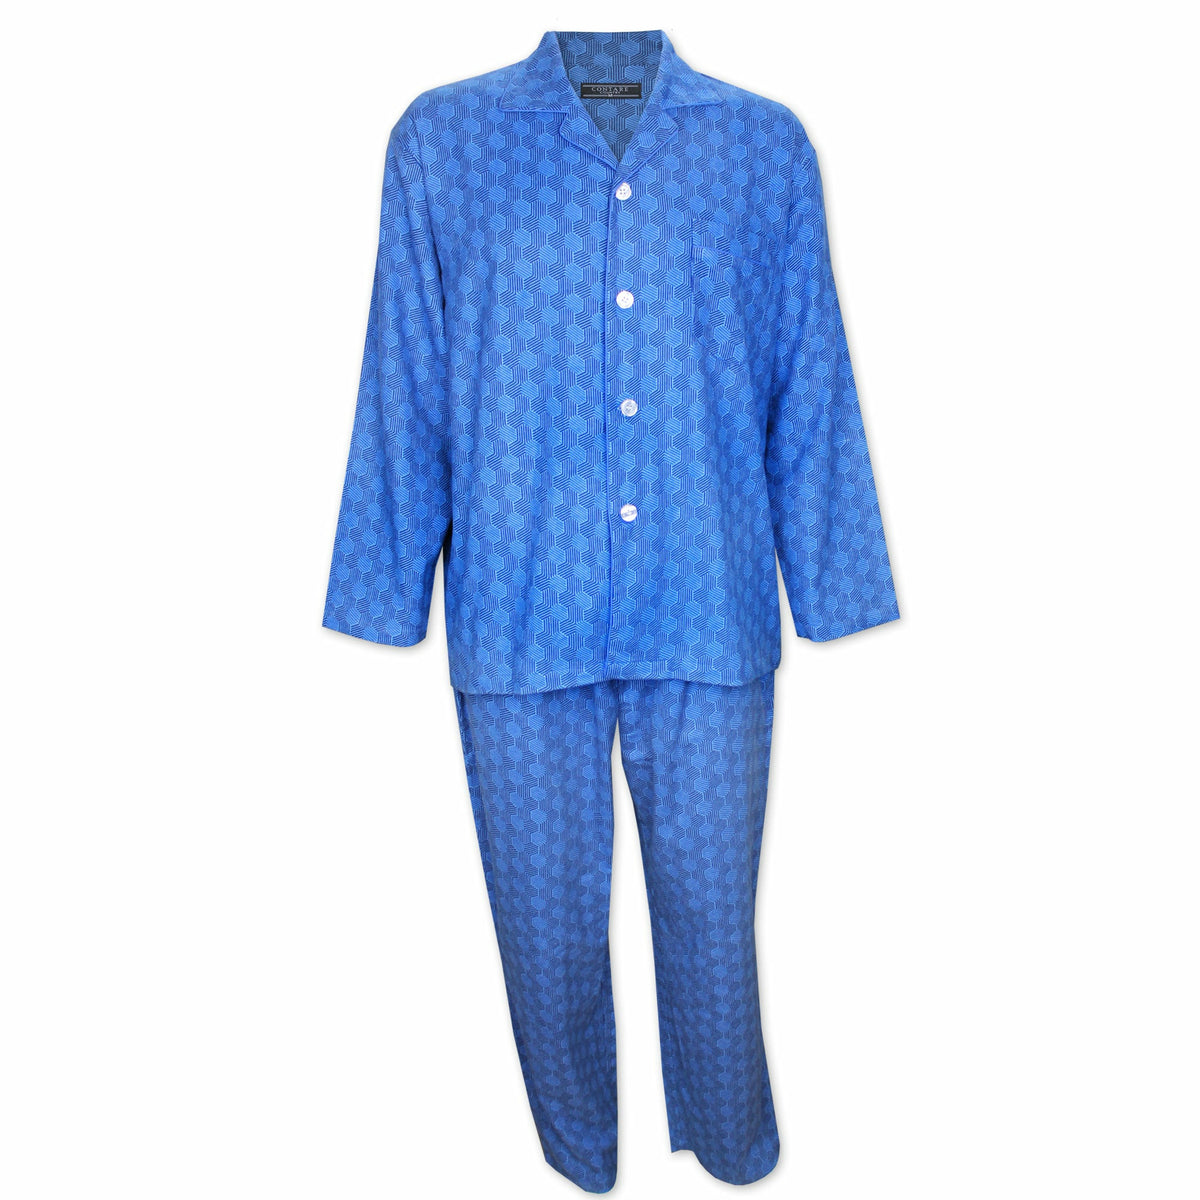 Contare A535000 Cotton Flannelette PJ Set